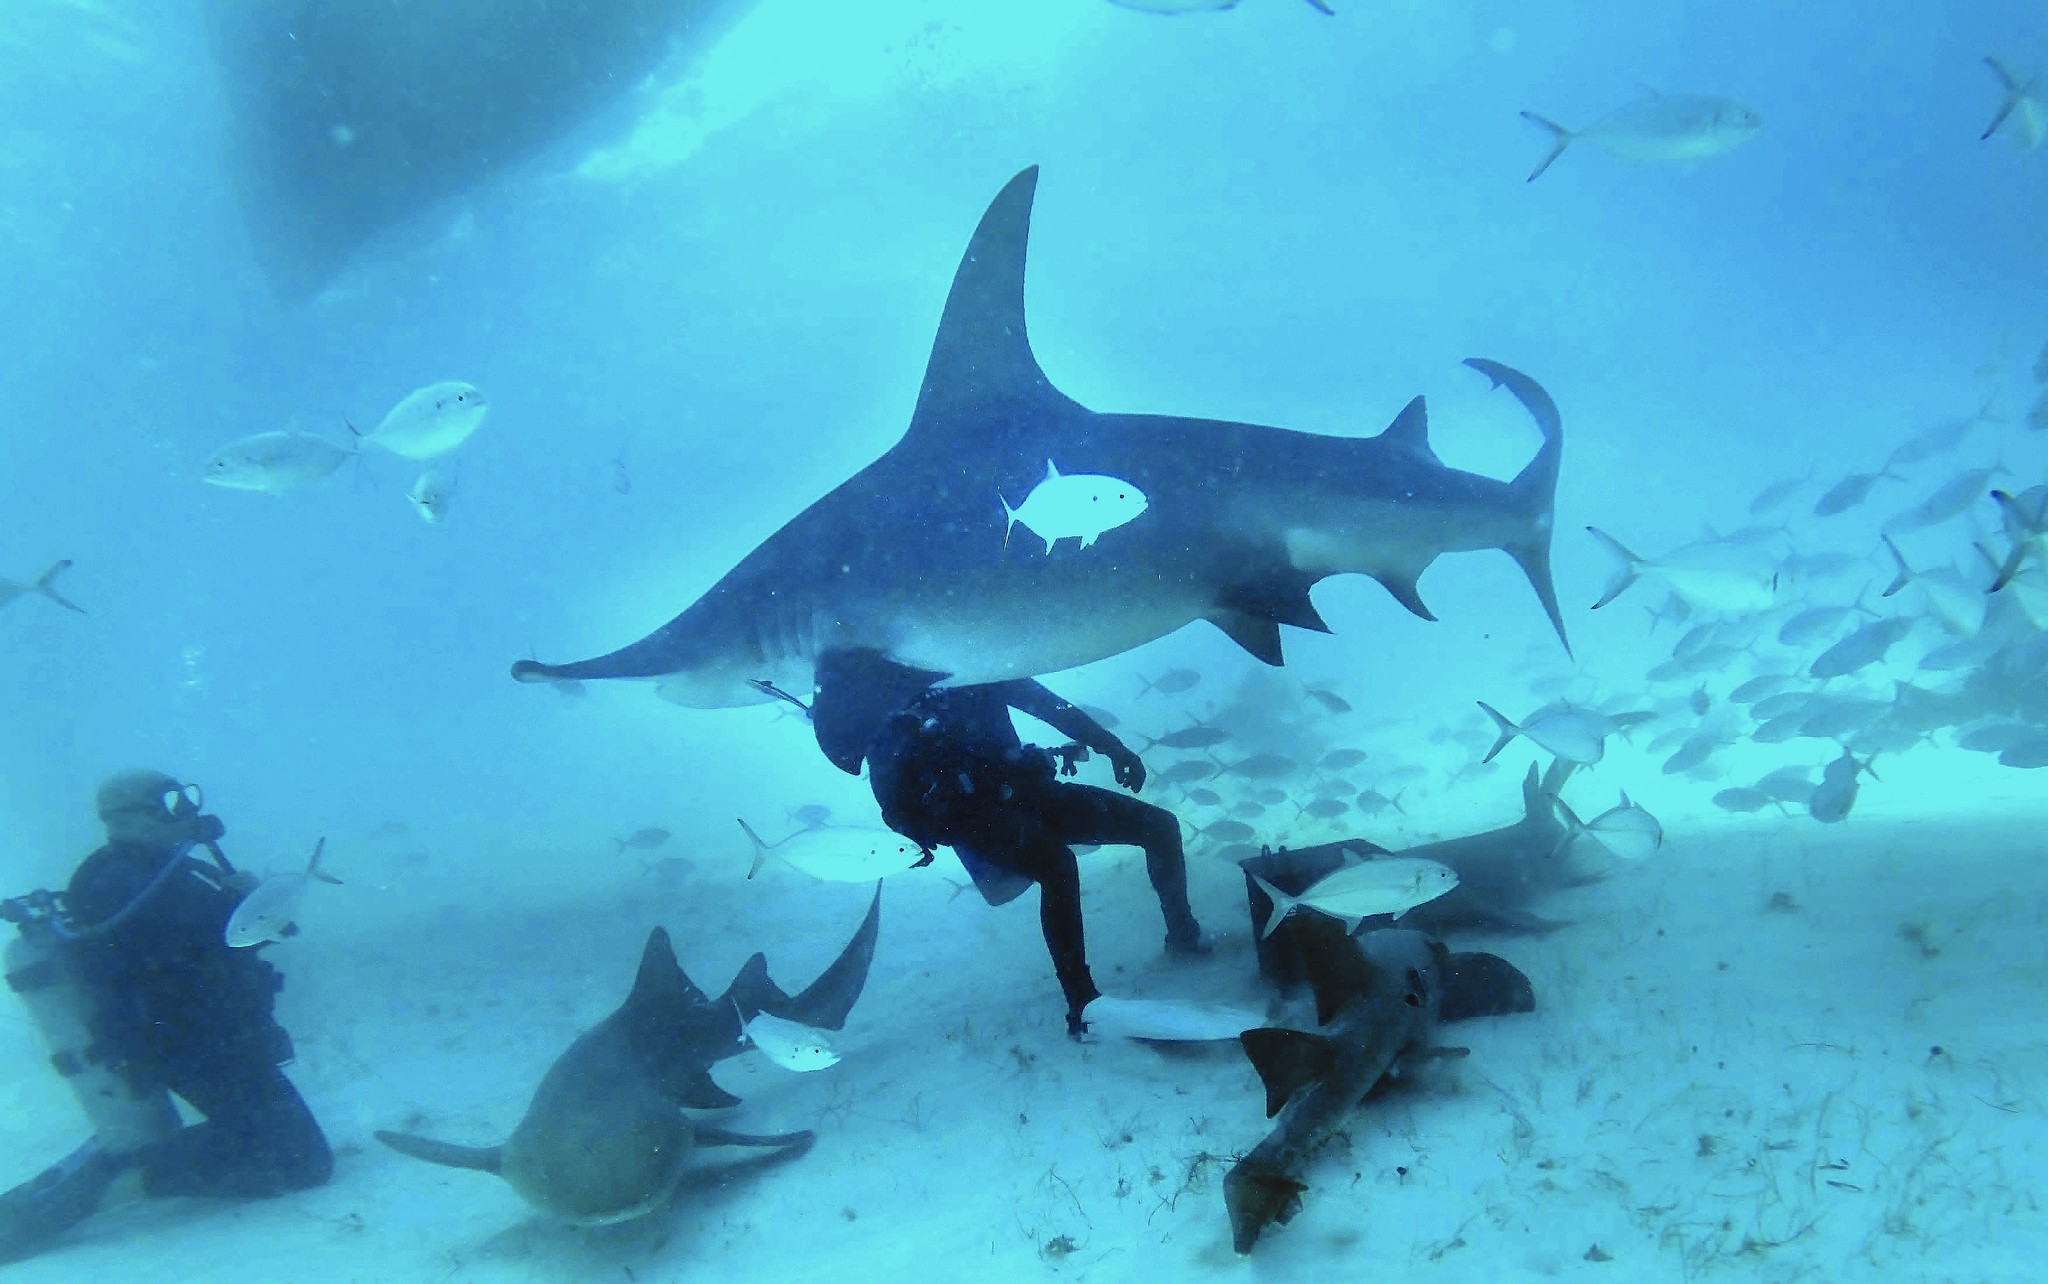 bimini appeal ranges from chasing big fish sharks to naps and